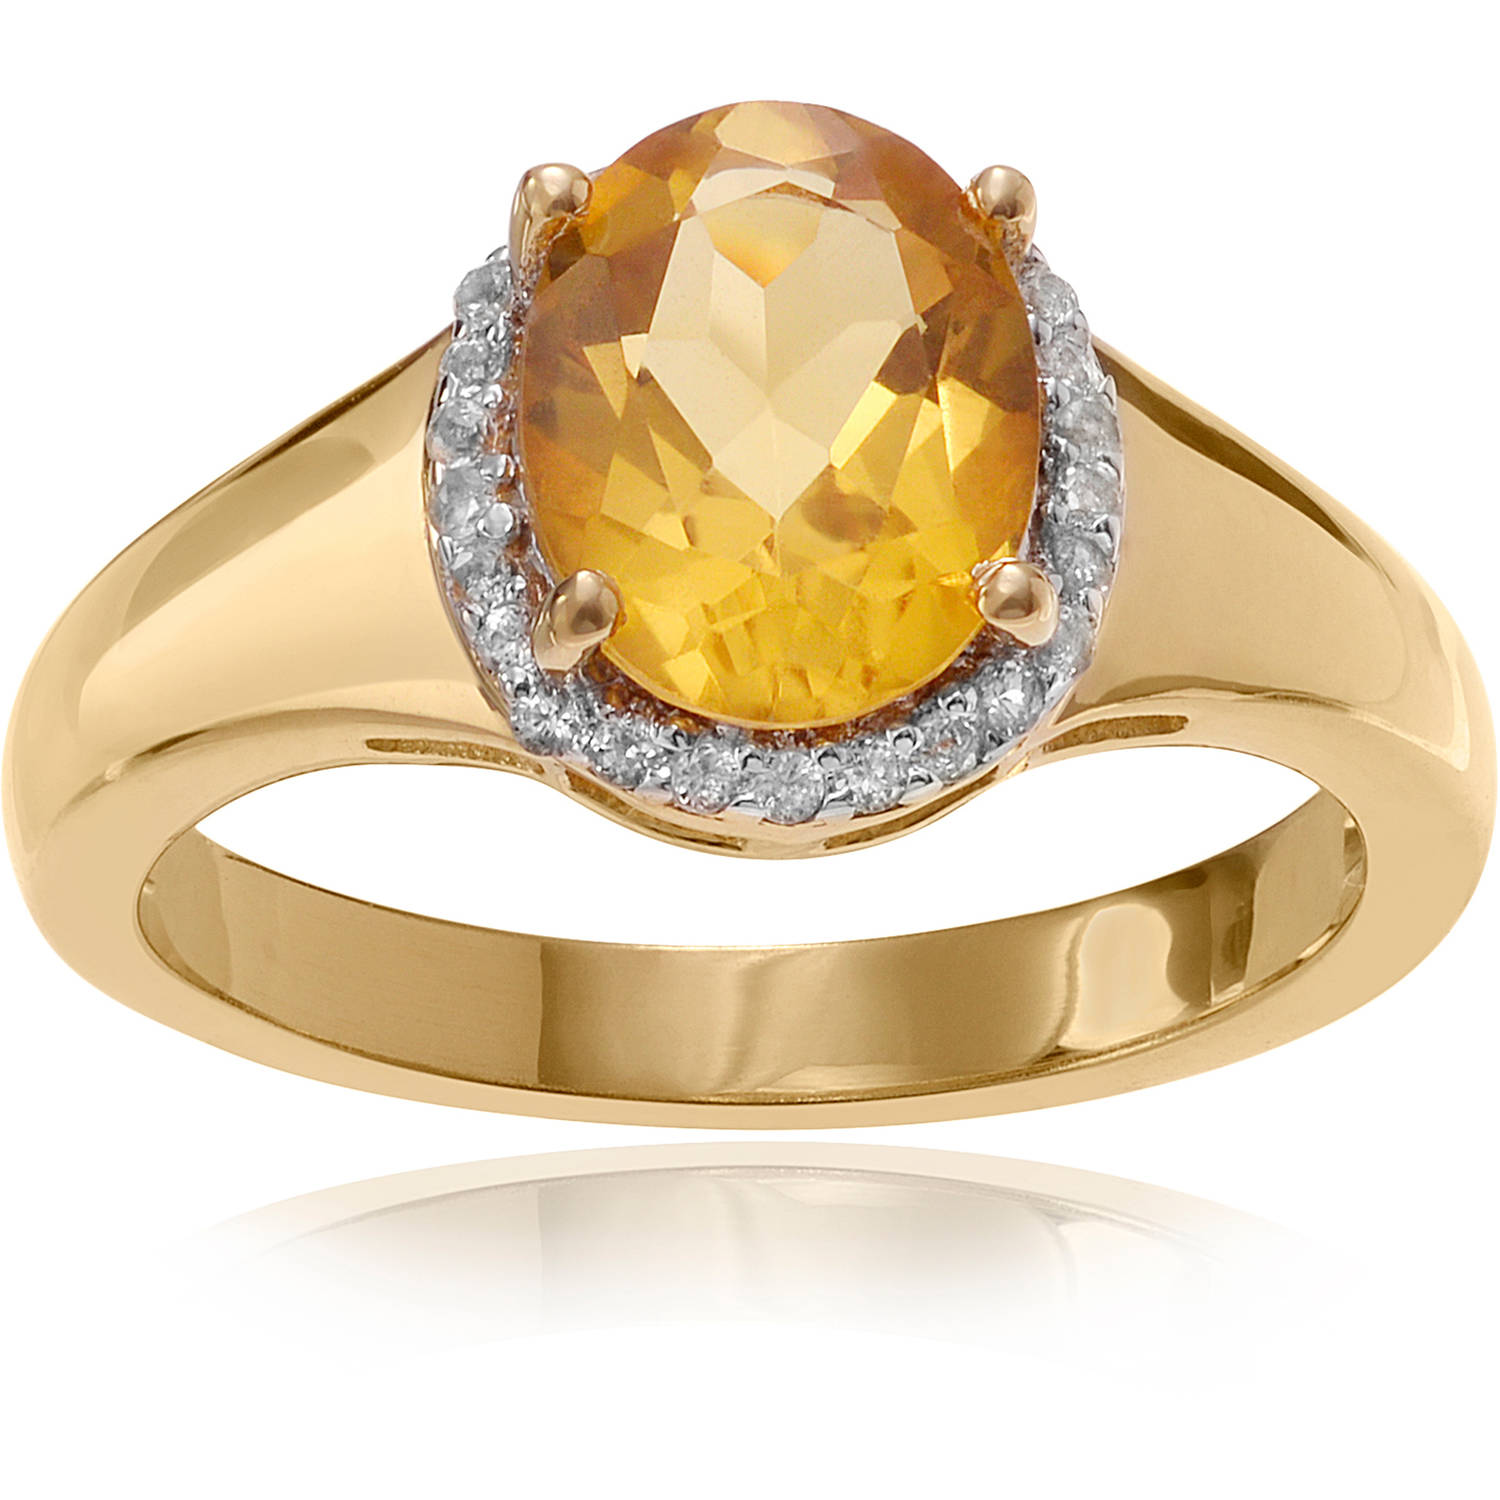 Brinley Co. Women's Citrine Topaz 14kt Gold-Plated Sterling Silver Halo Fashion Ring